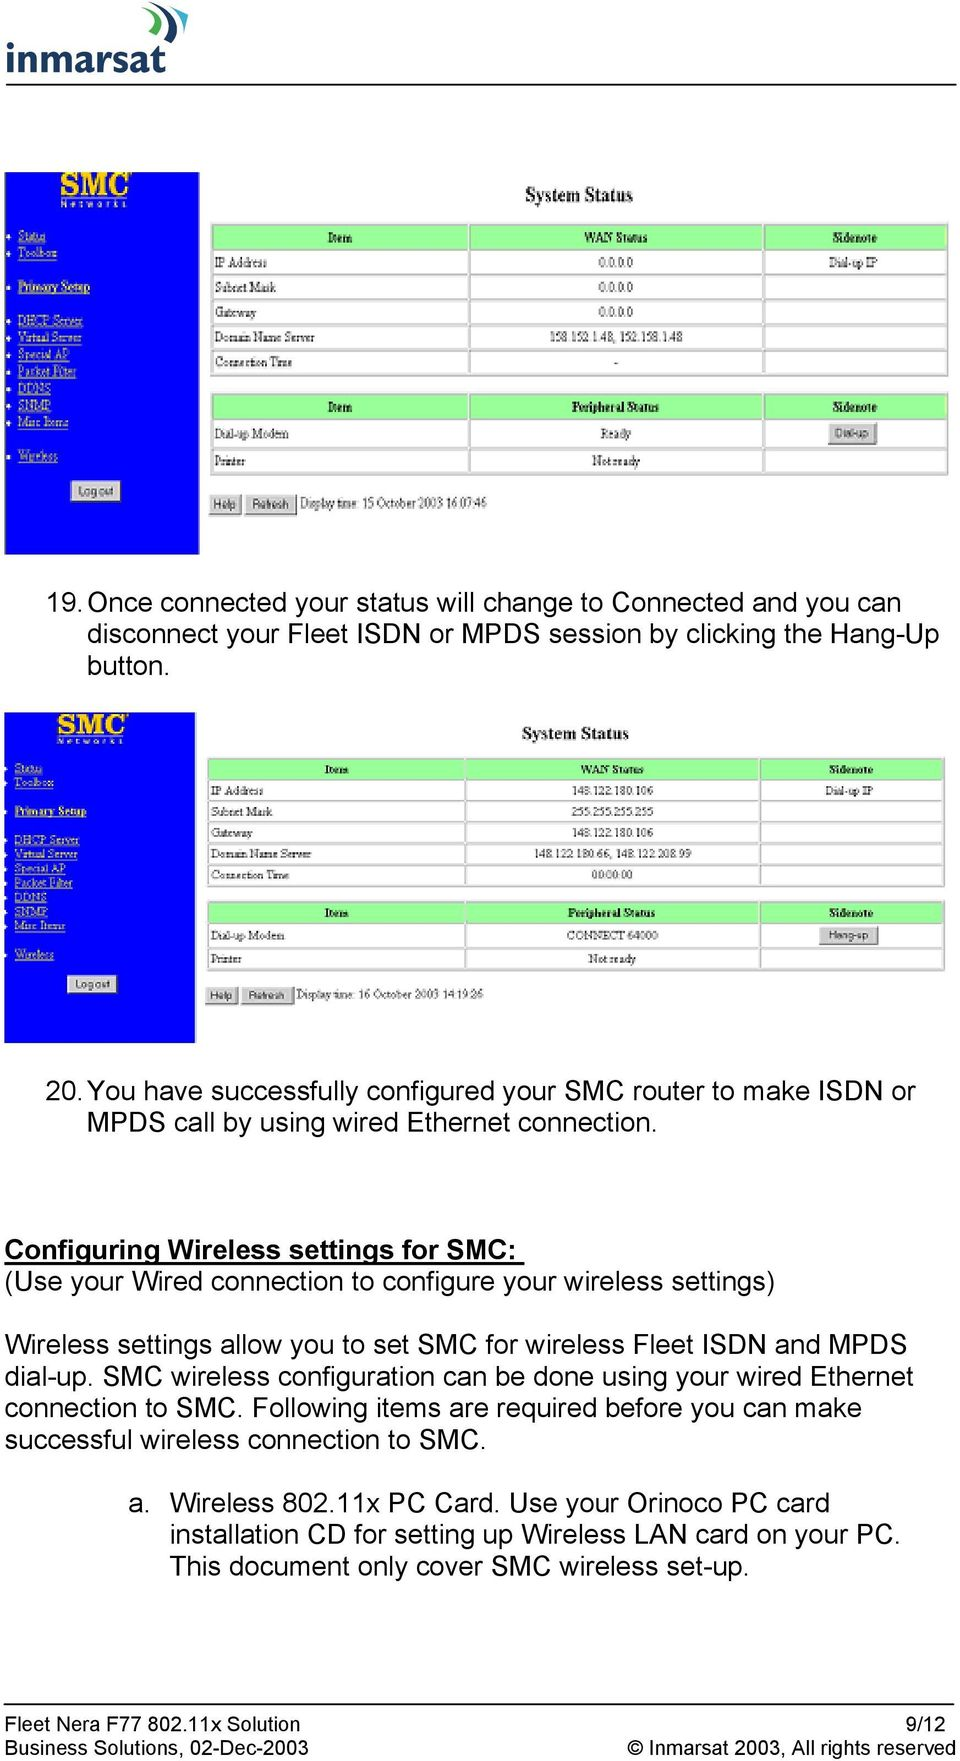 Configuring Wireless settings for SMC: (Use your Wired connection to configure your wireless settings) Wireless settings allow you to set SMC for wireless Fleet ISDN and MPDS dial-up.